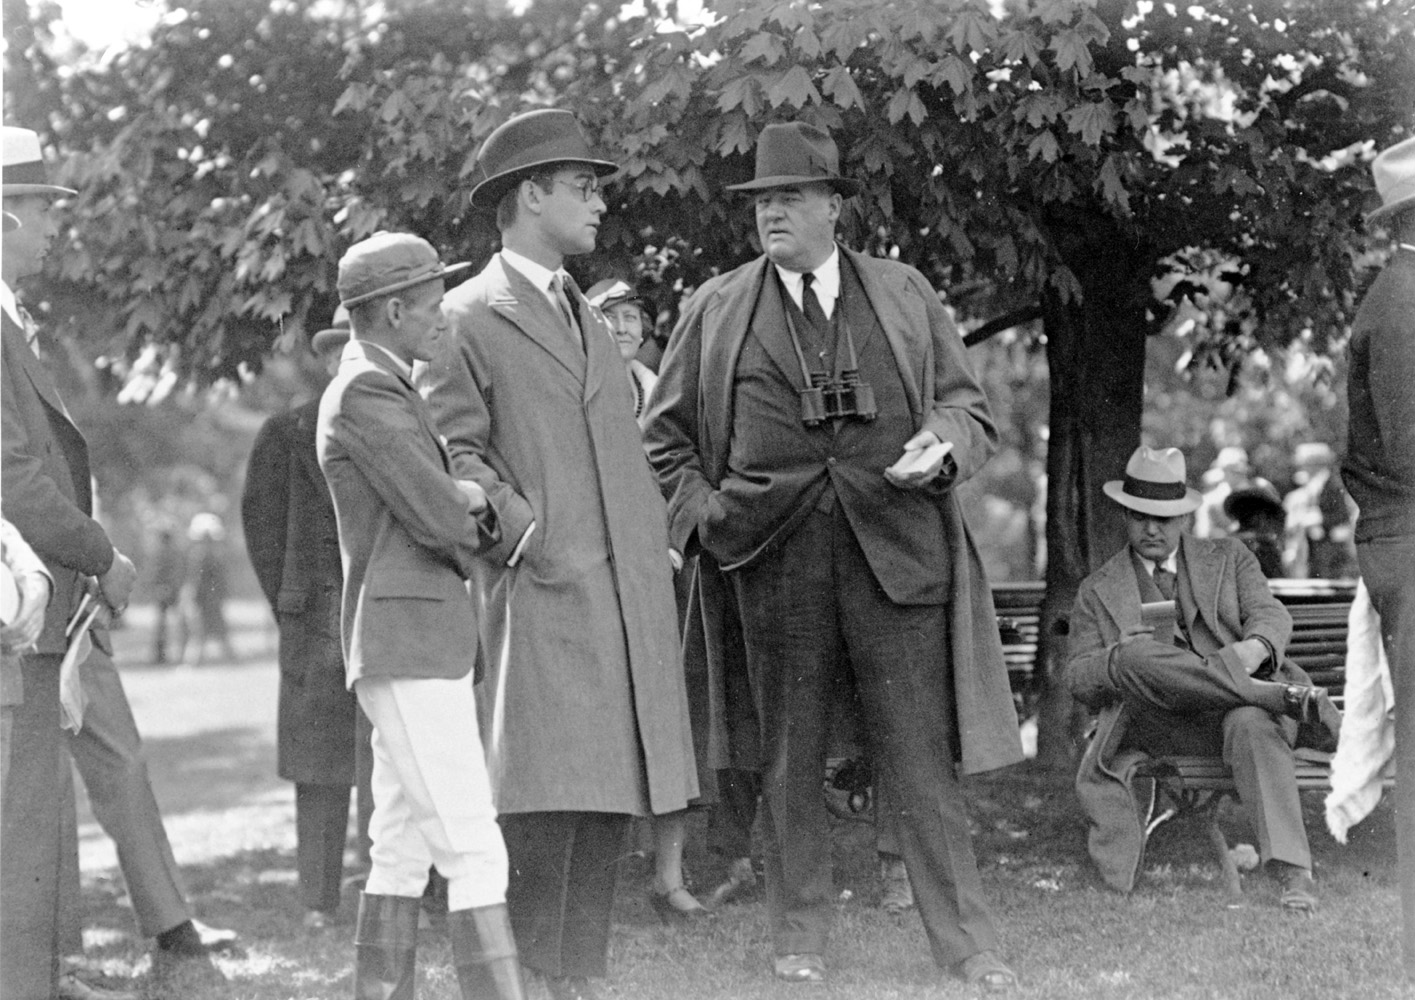 Buddy Ensor, John Hay Whitney, and J. W. Healey in the paddock (Keeneland Library Cook Collection/Museum Collection)